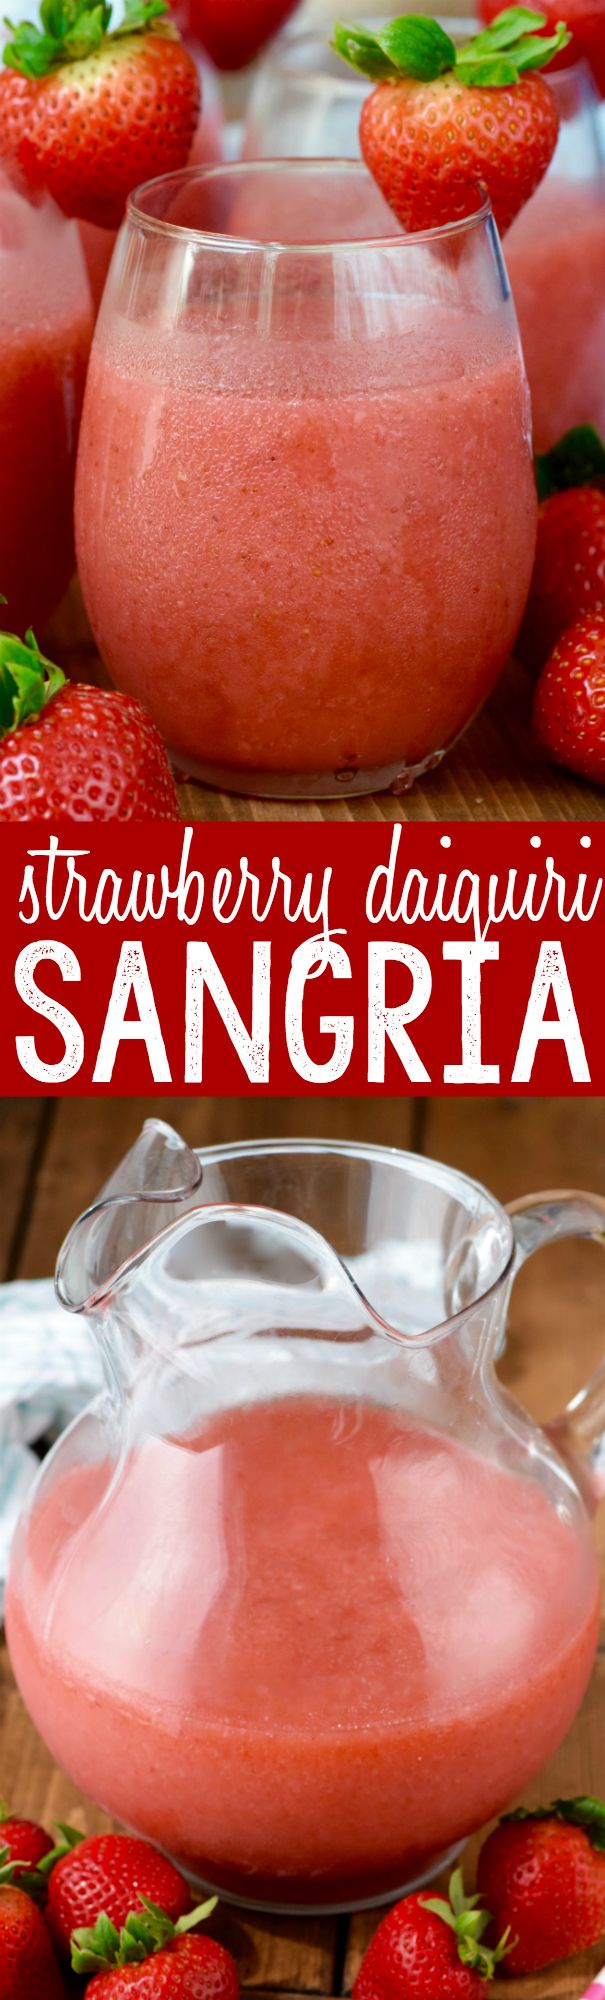 This Strawberry Daiquiri Sangria is super easy to make, no crazy ingredients, and is awesome for a party! You just might want to triple it, because it will go FAST!: